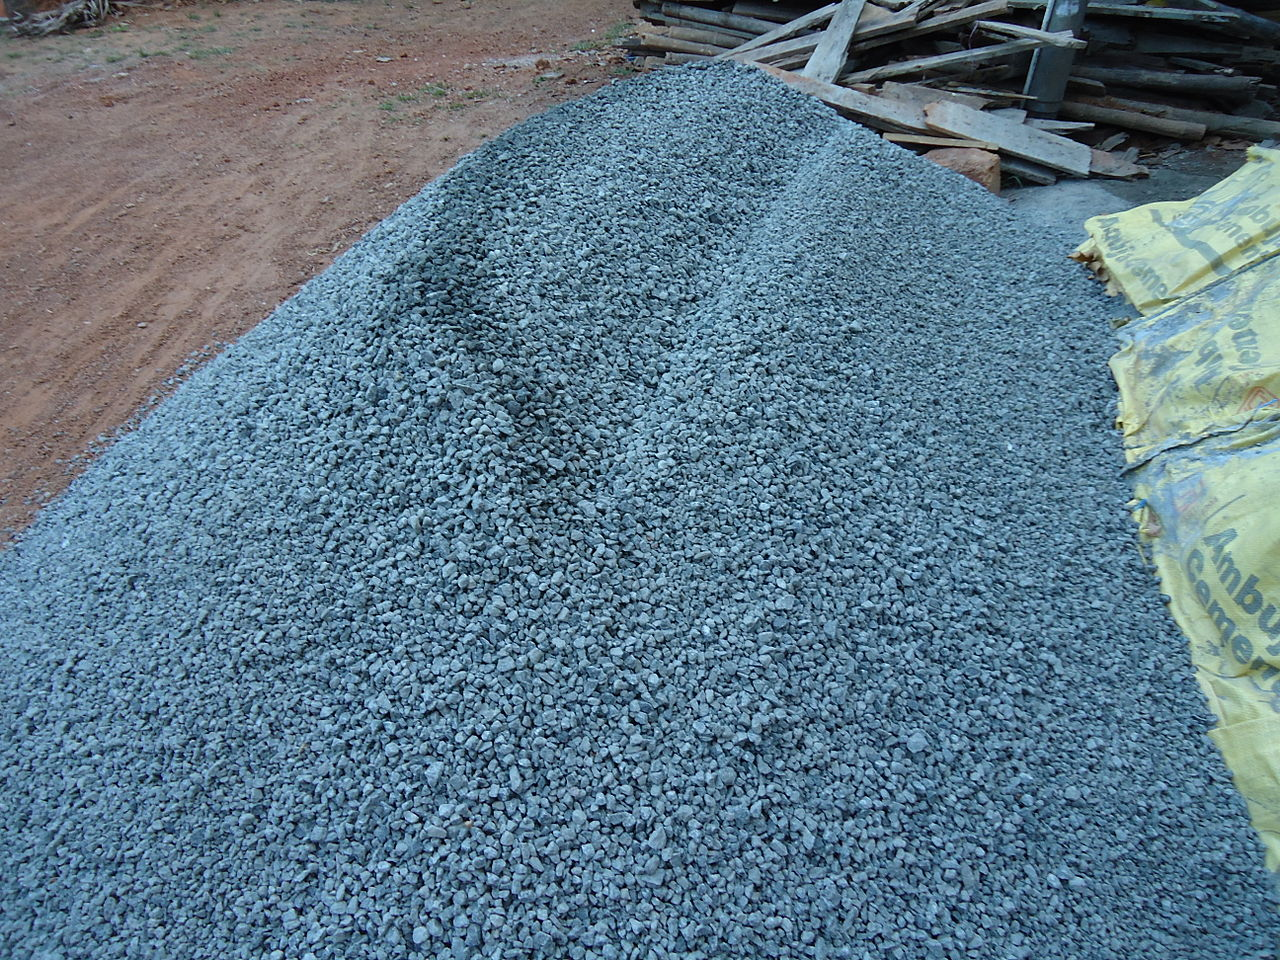 Crushed Blue Stone : File stone crush metel g wikimedia commons